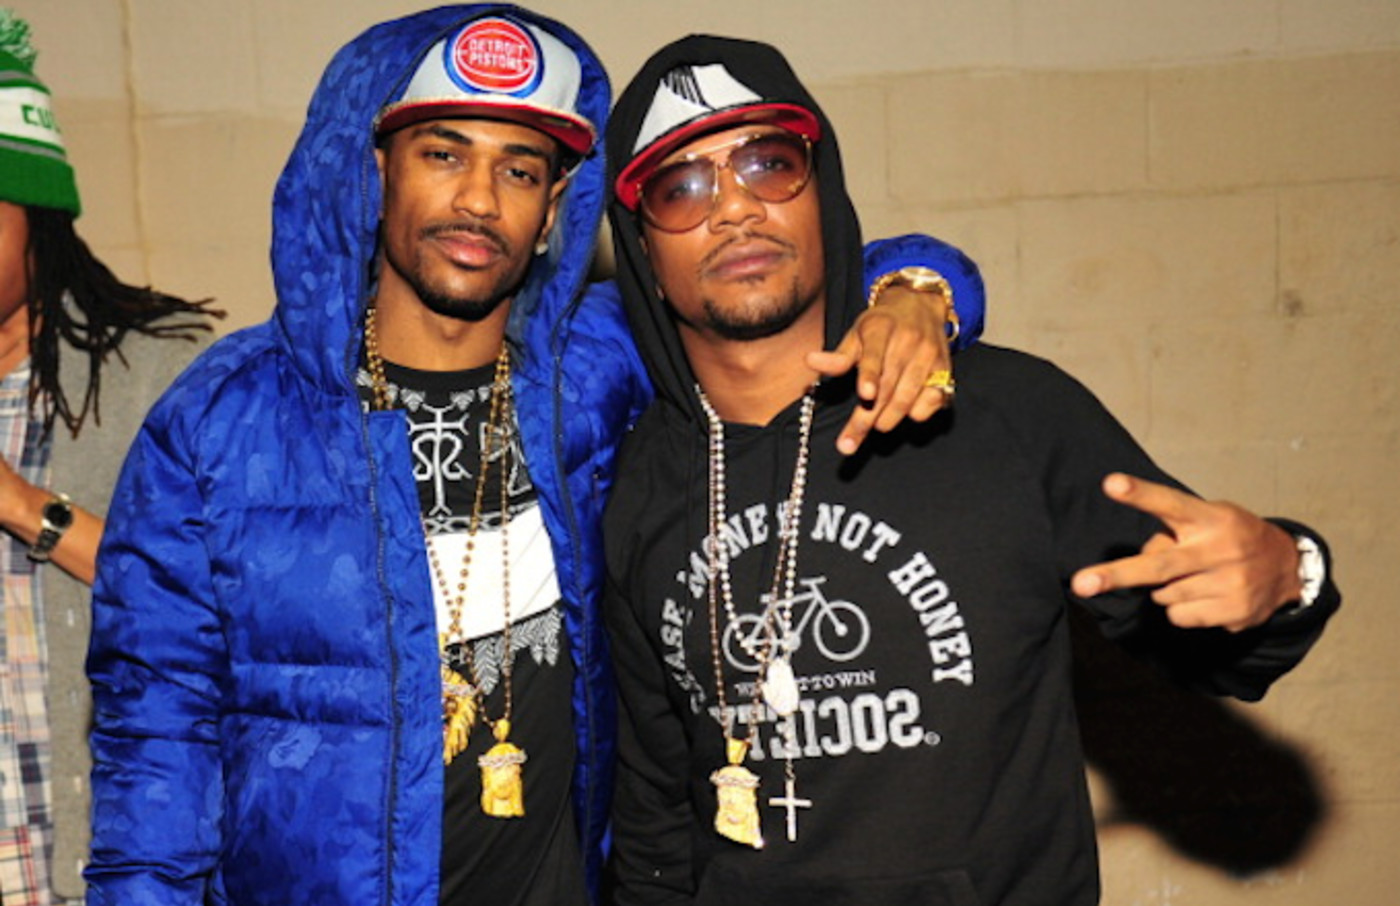 Big Sean and Cyhi the Prynce attend the after party at the Velvet Room